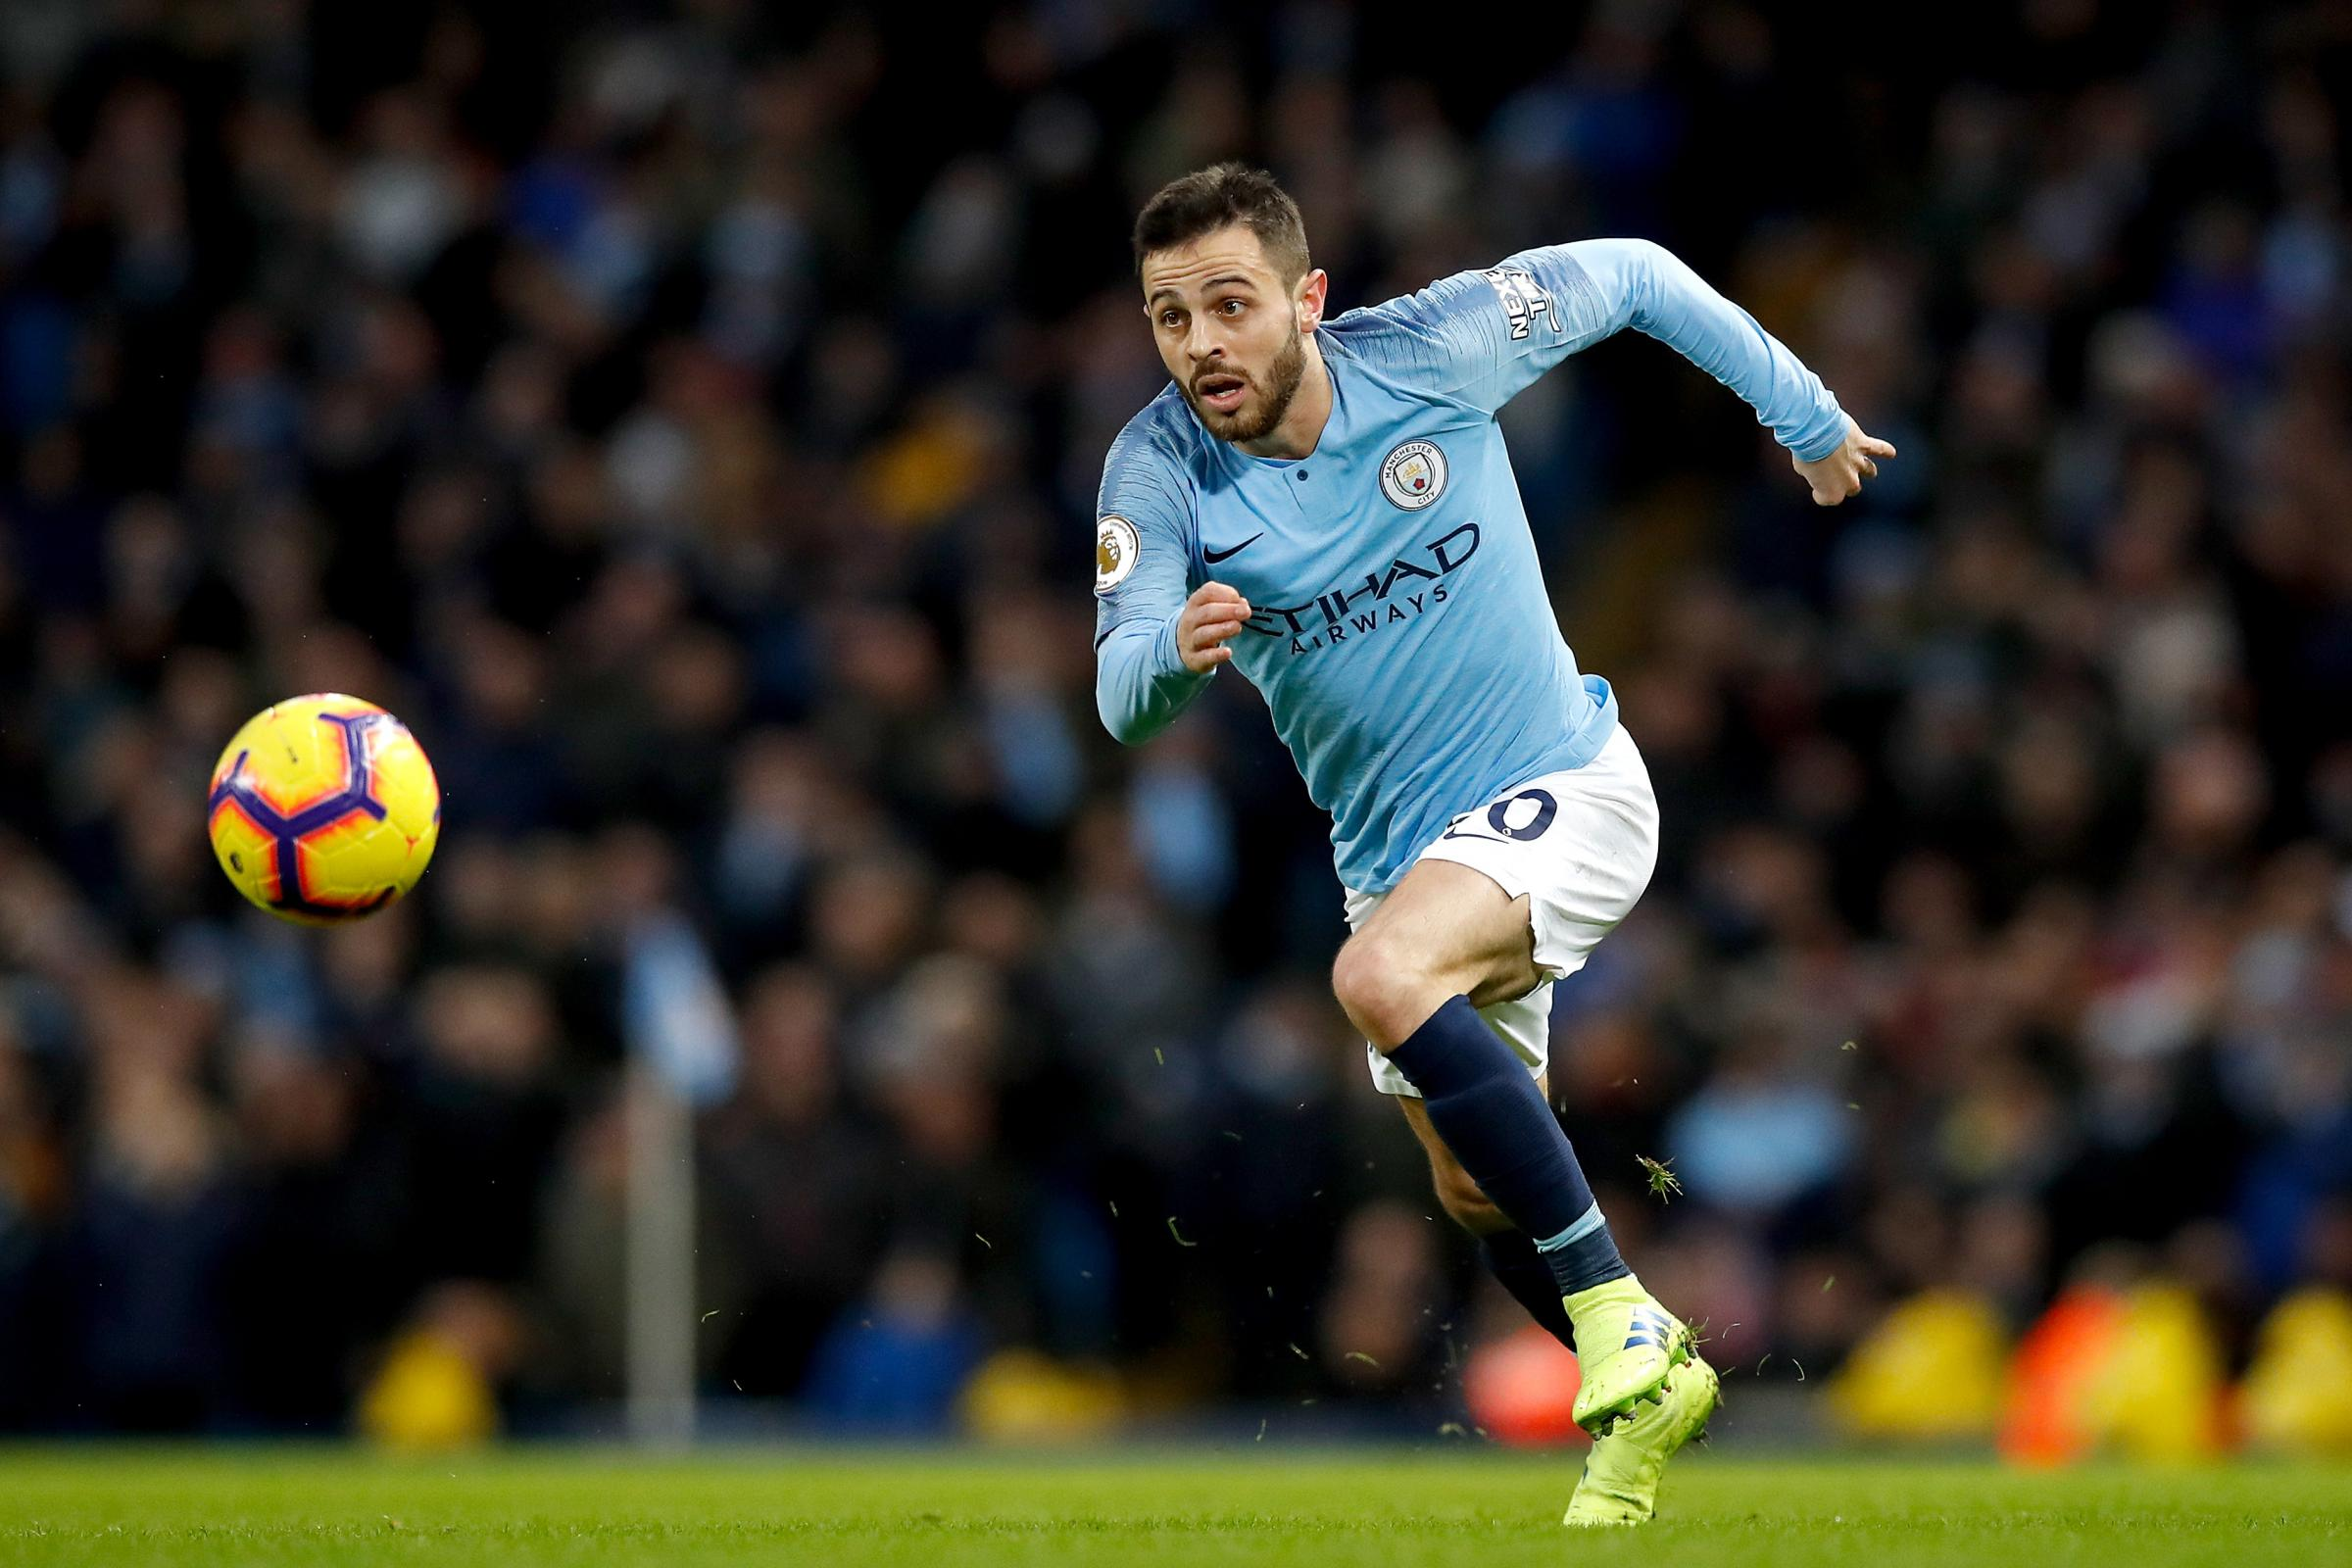 Bernardo Silva wants to win multiple trophies with Manchester City